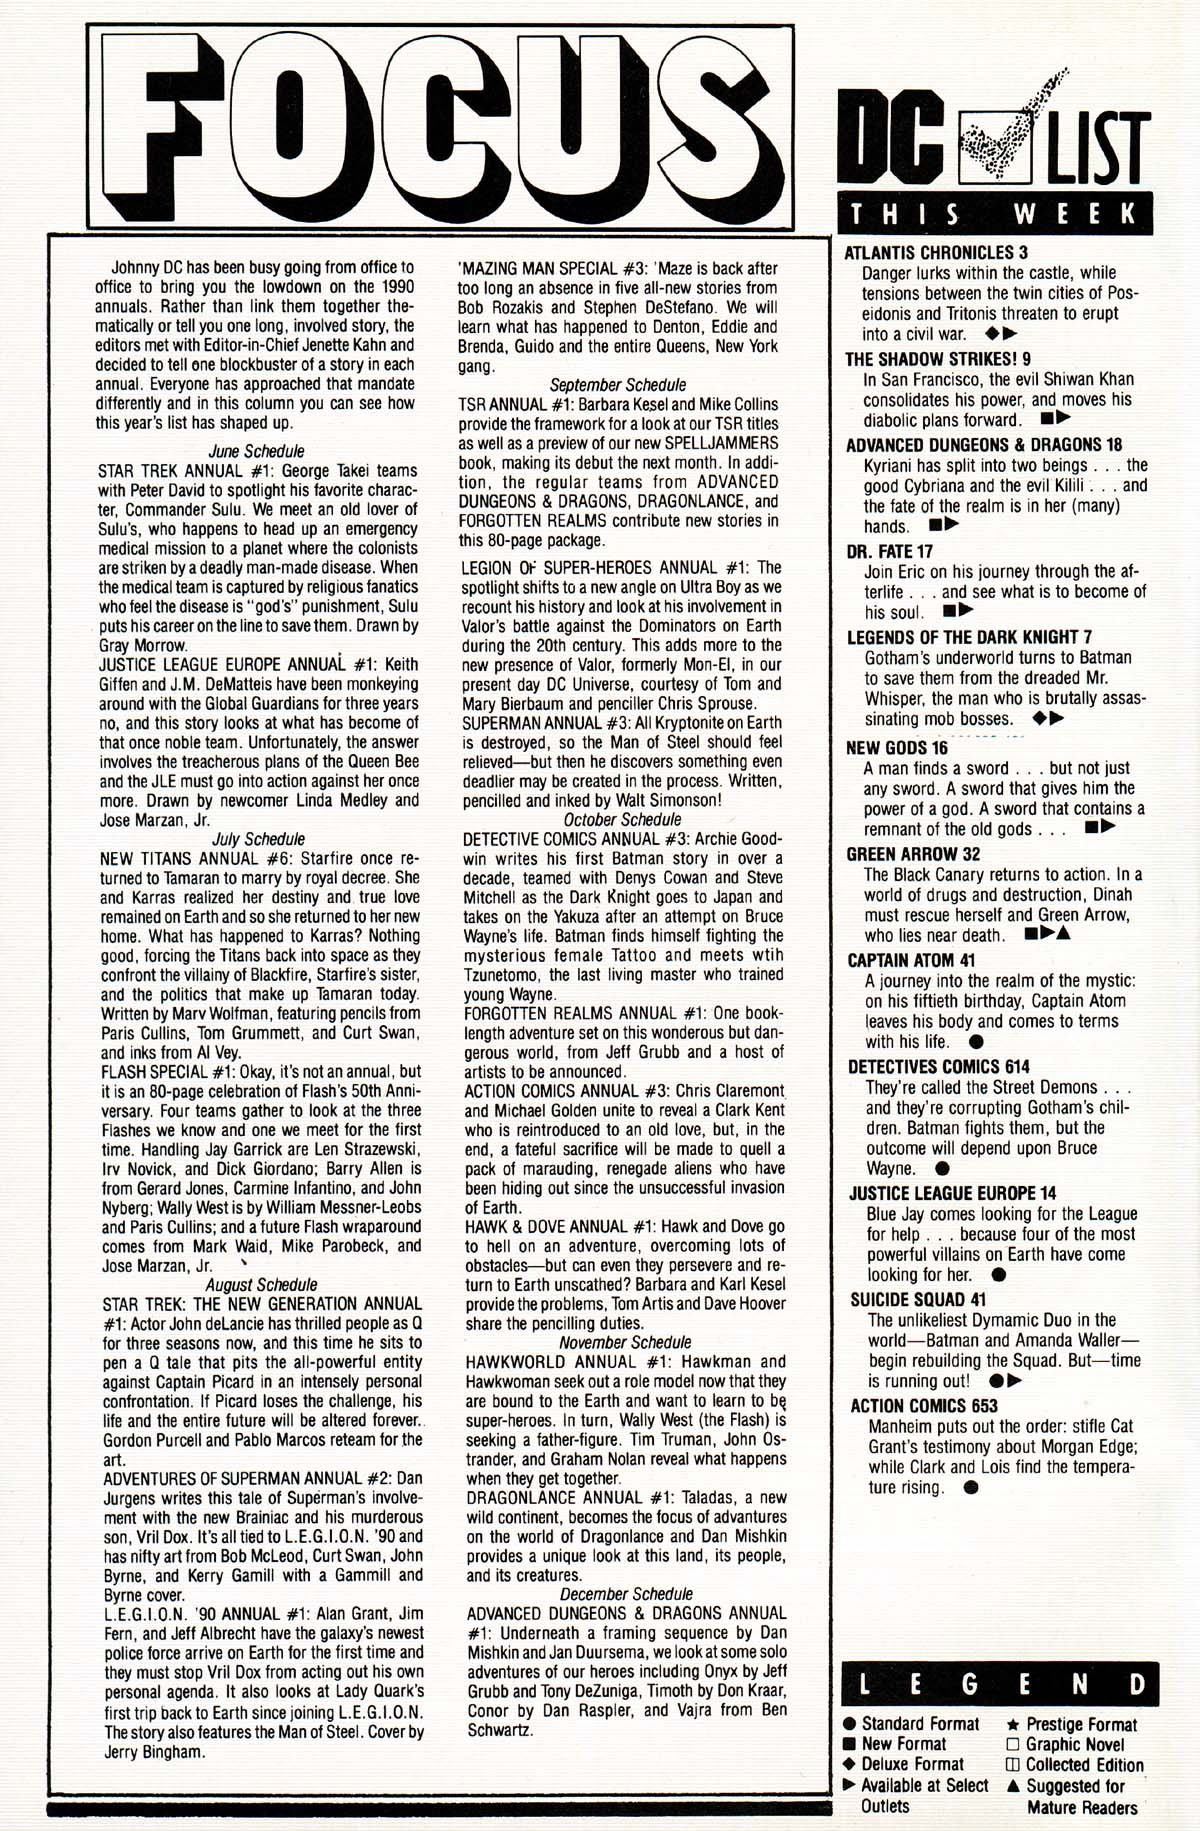 Advanced Dungeons & Dragons 18 Page 2